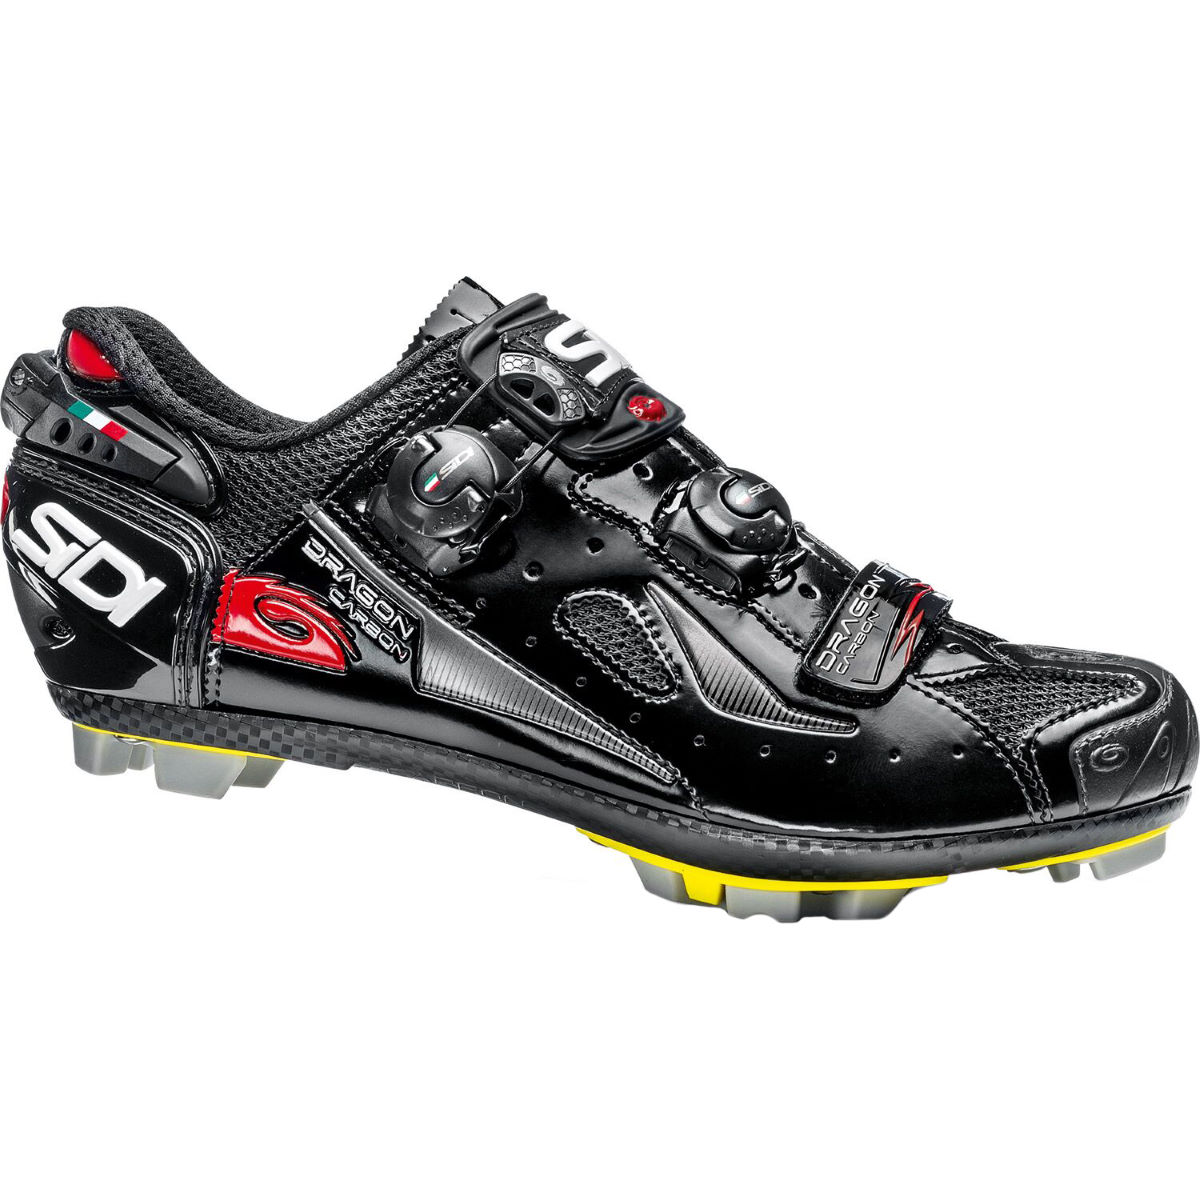 Sidi Dragon 4 SRS Carbon MTB Shoe - 43.5 Black/Black | Offroad Shoes